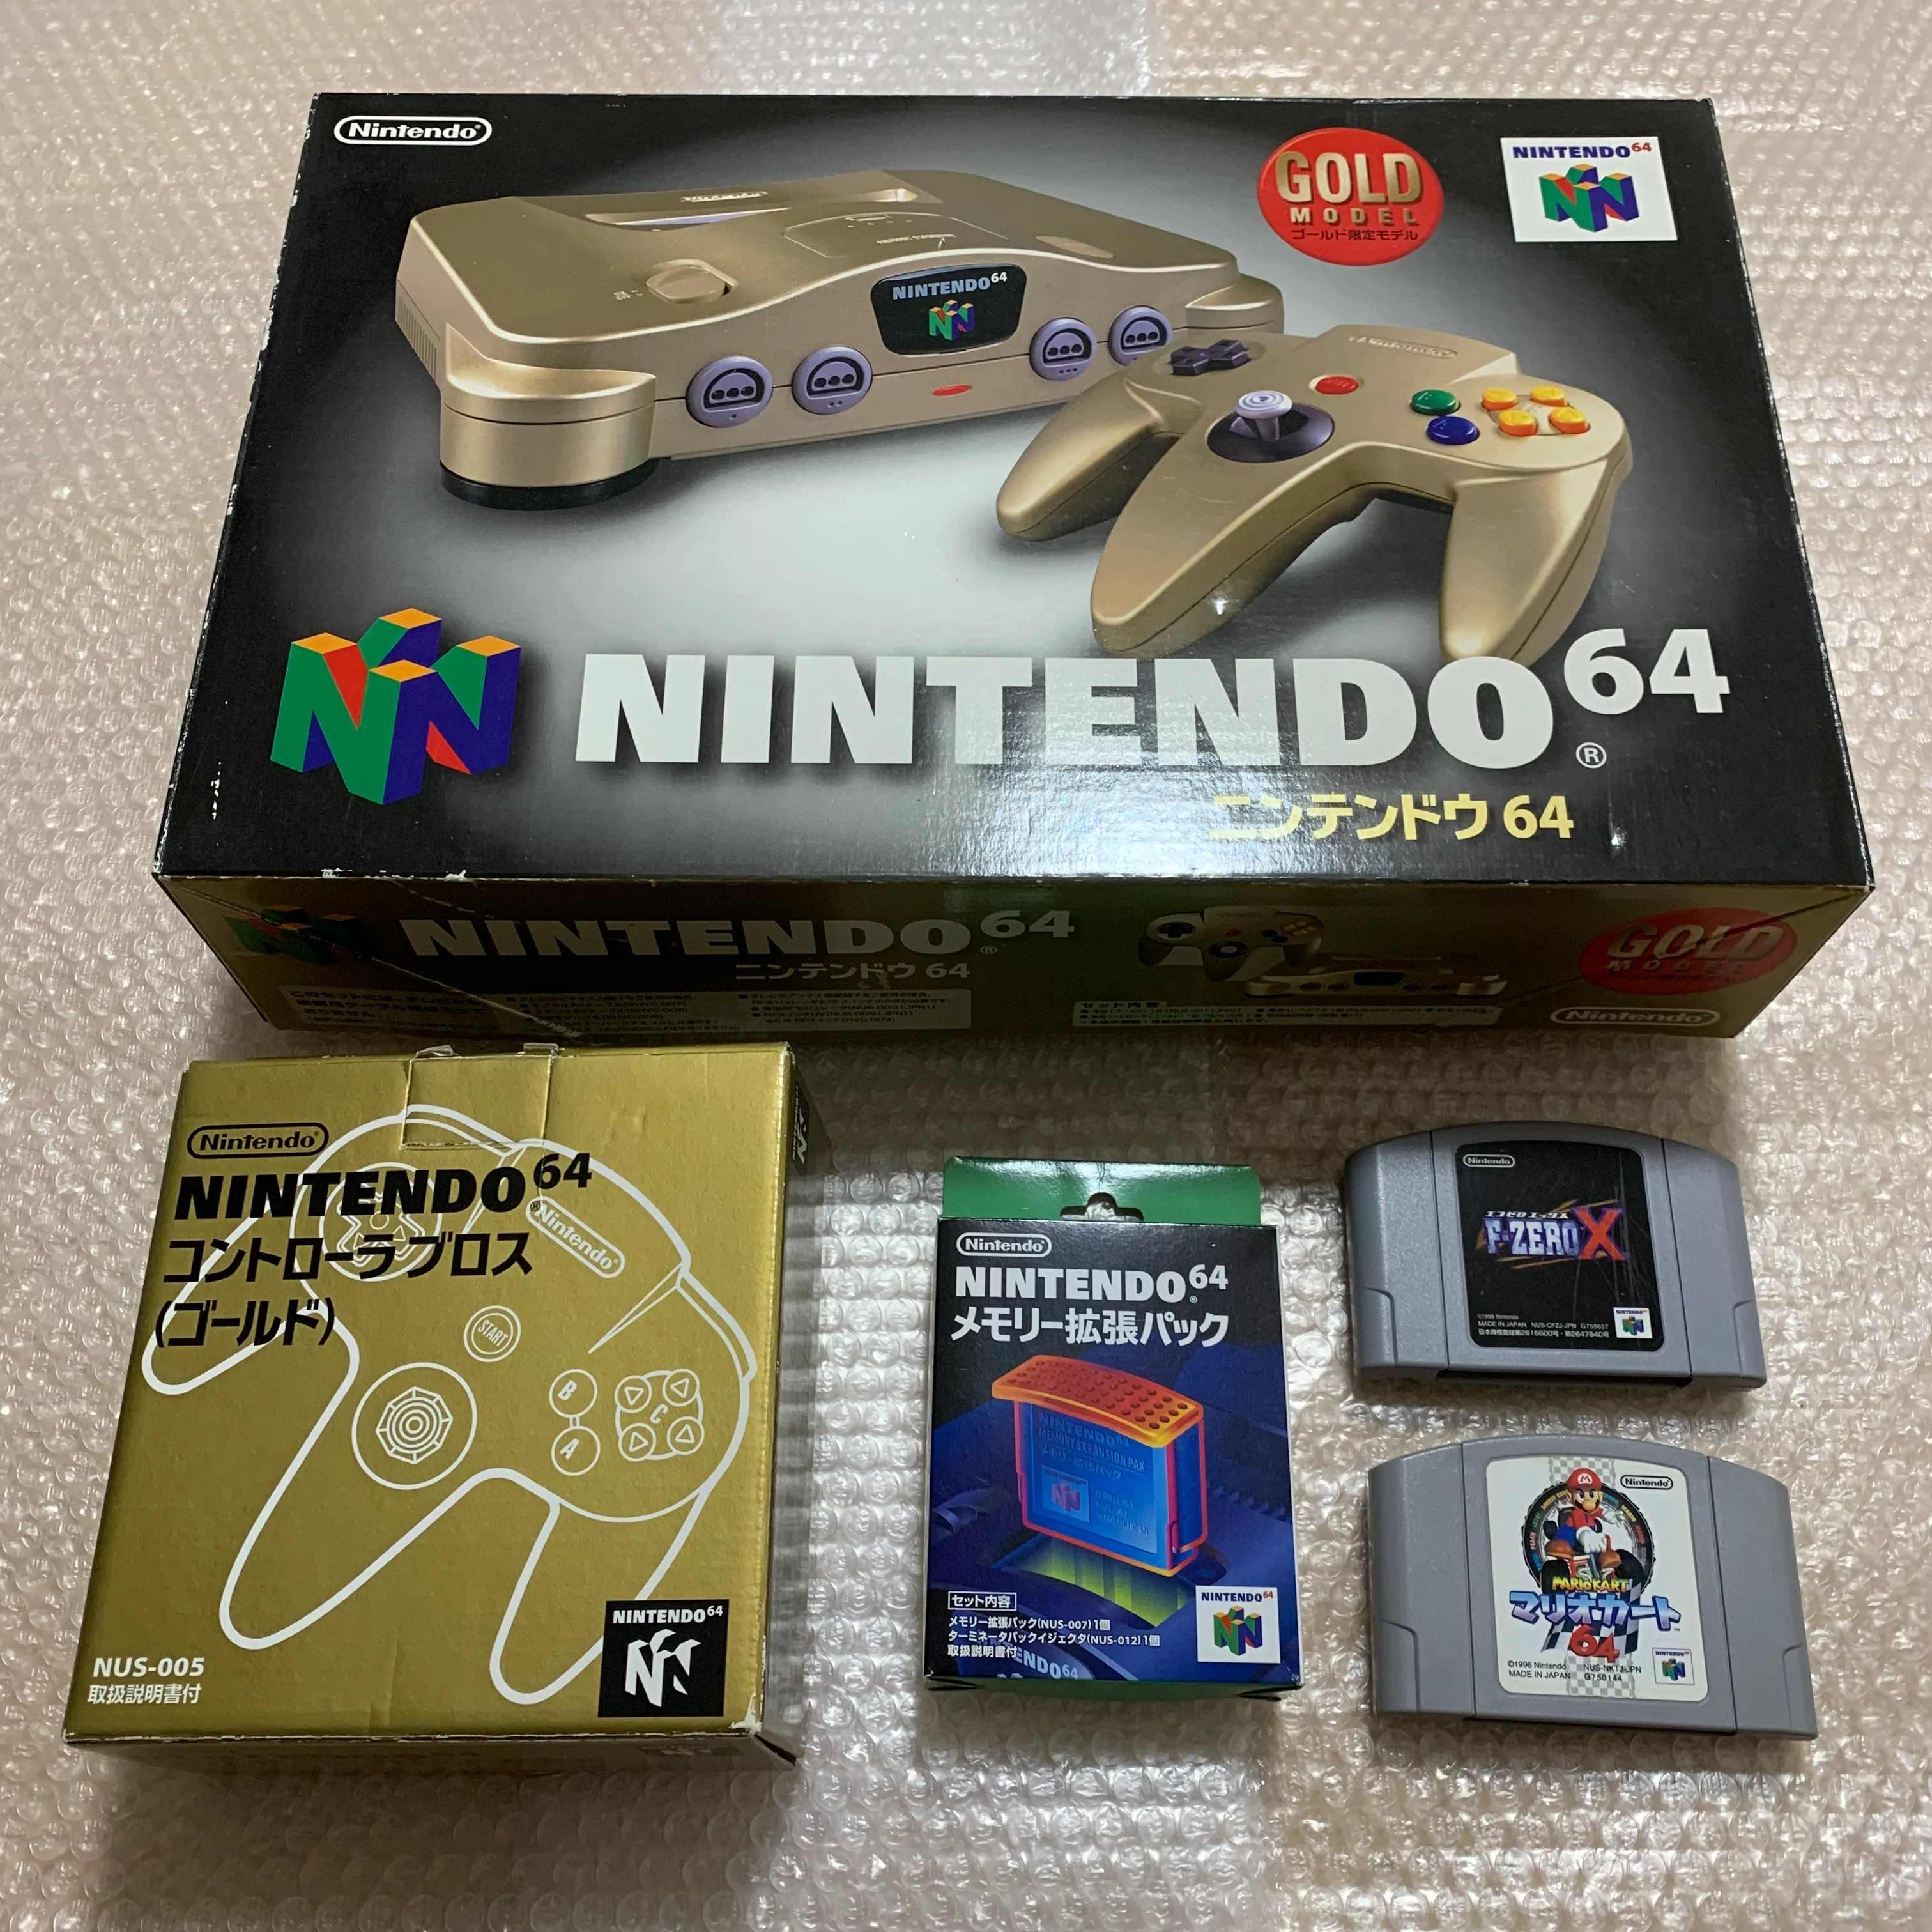 gold nintendo 64 in box set with ultra hdmi kit compatible with jp a retroasia [ 3024 x 3024 Pixel ]